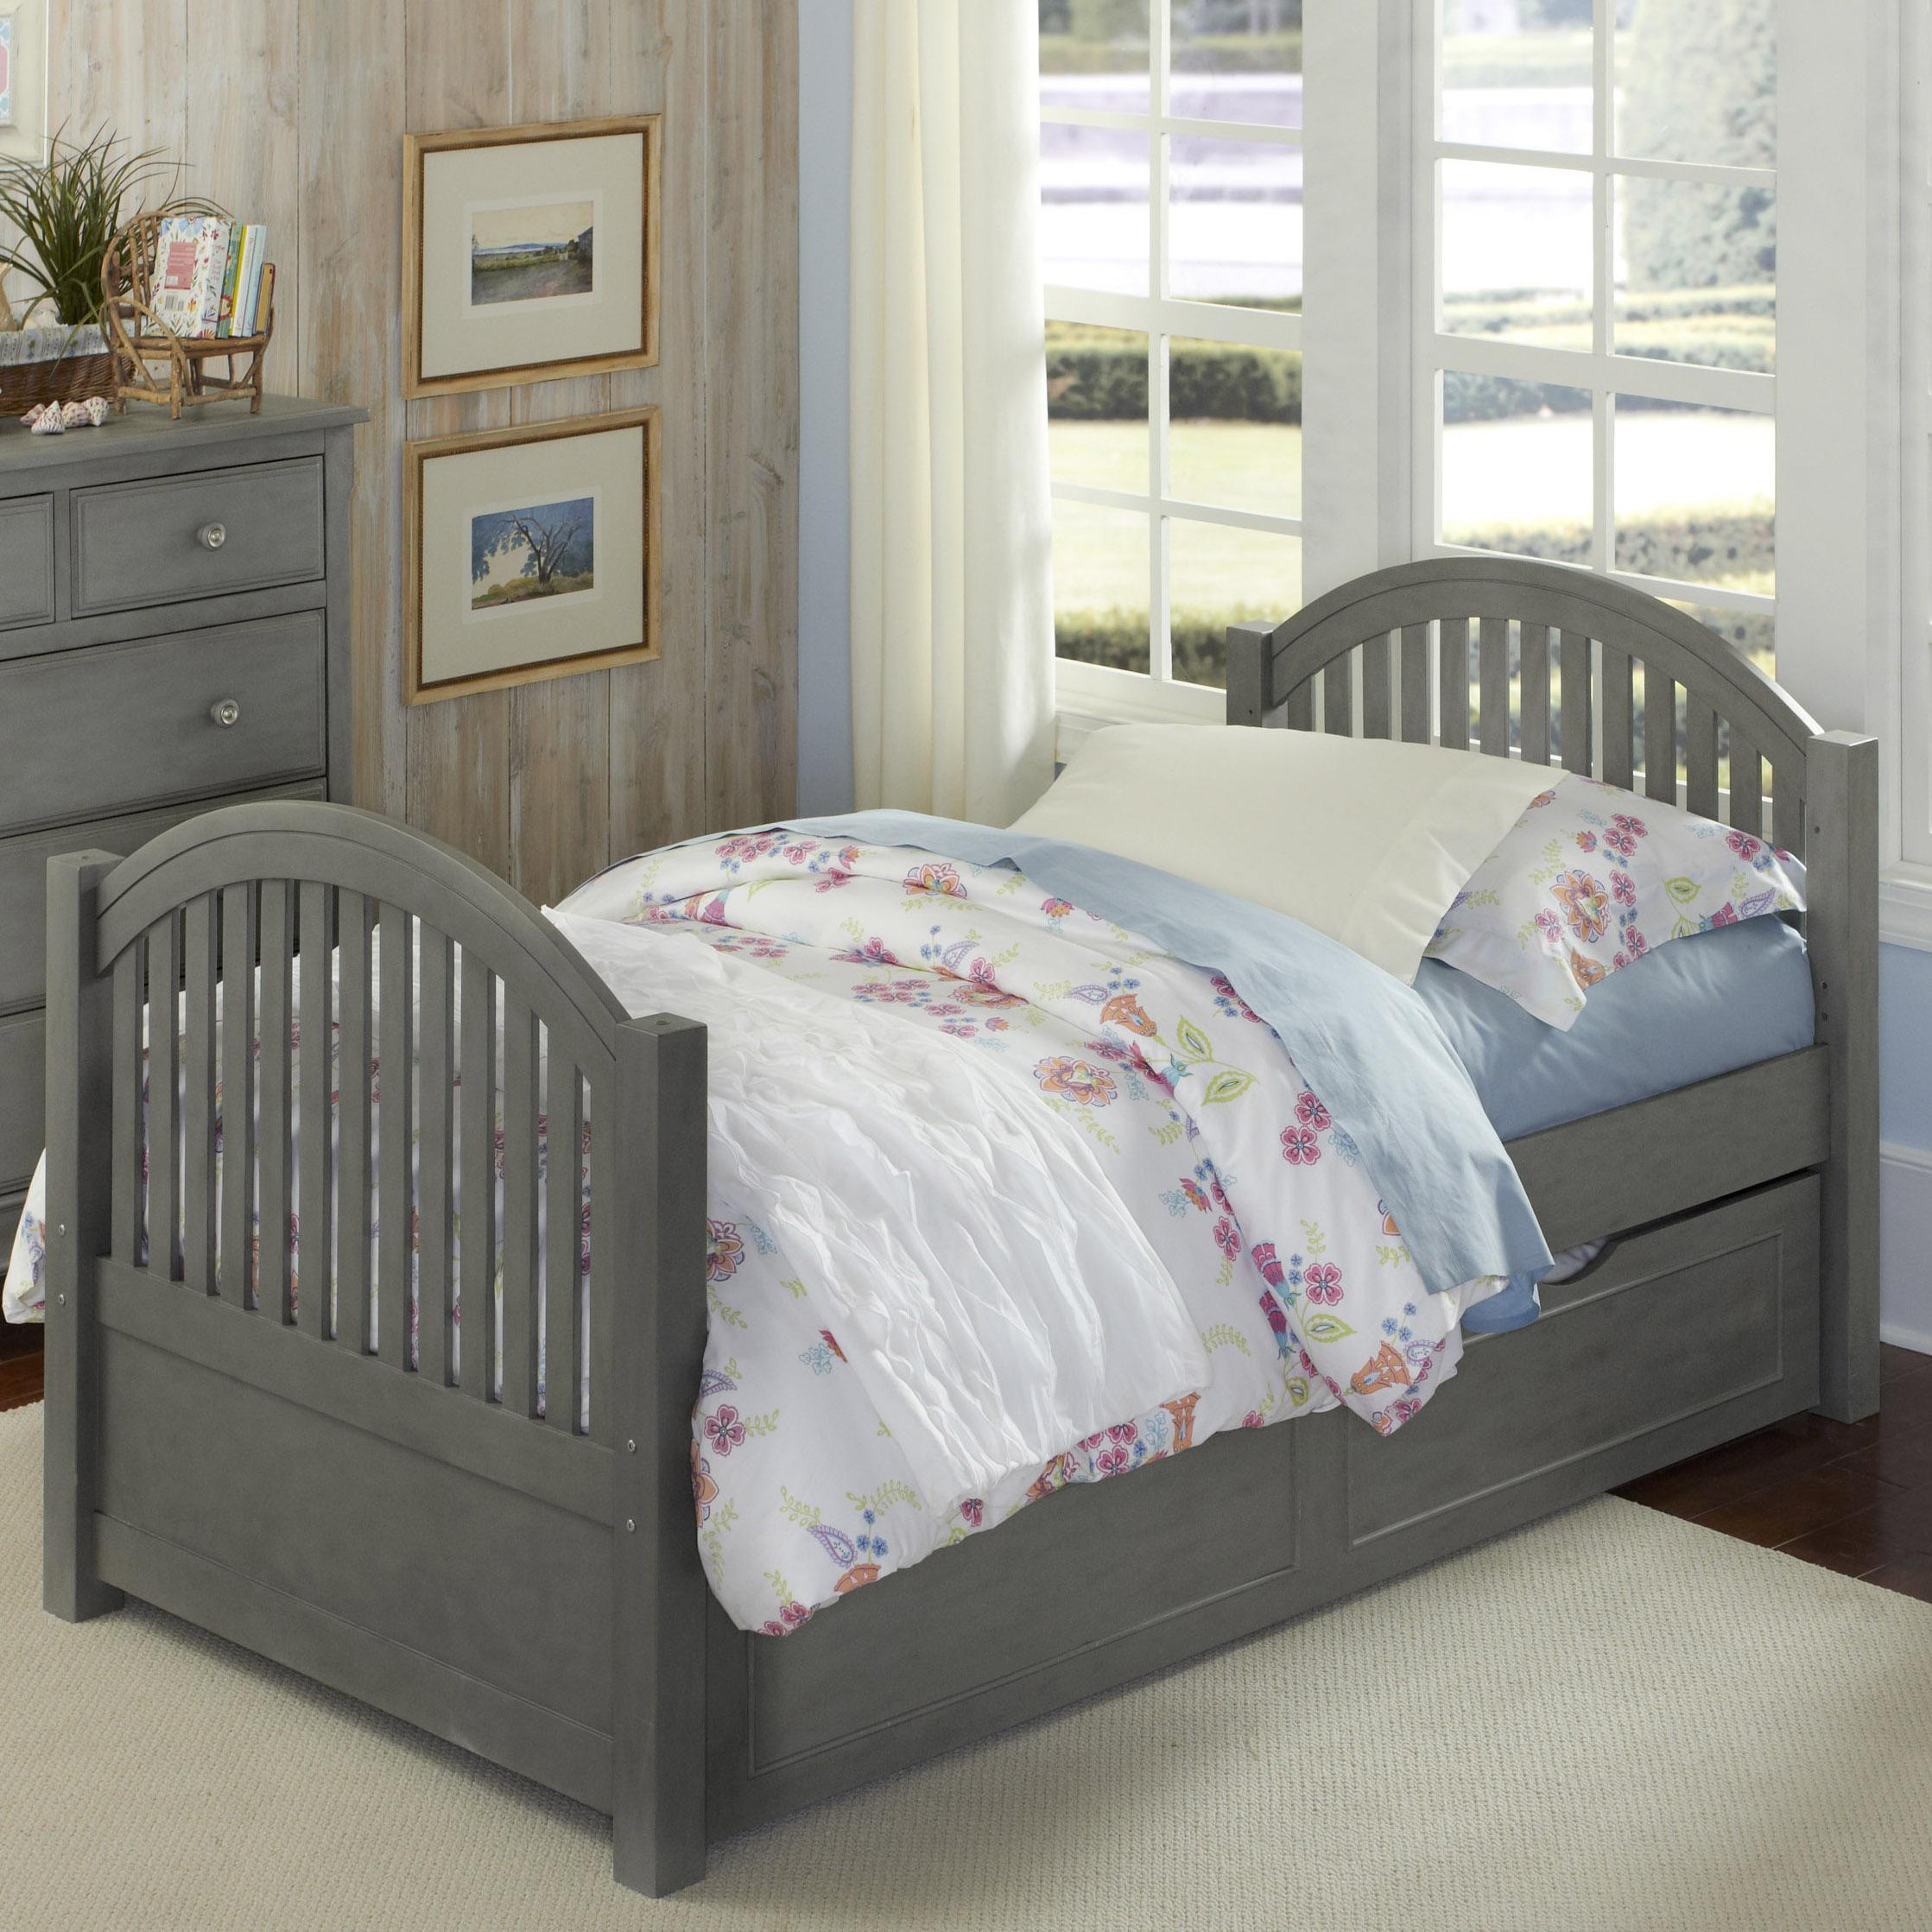 Lake House Adrian Twin Bed + Trundle by NE Kids at Rooms for Less